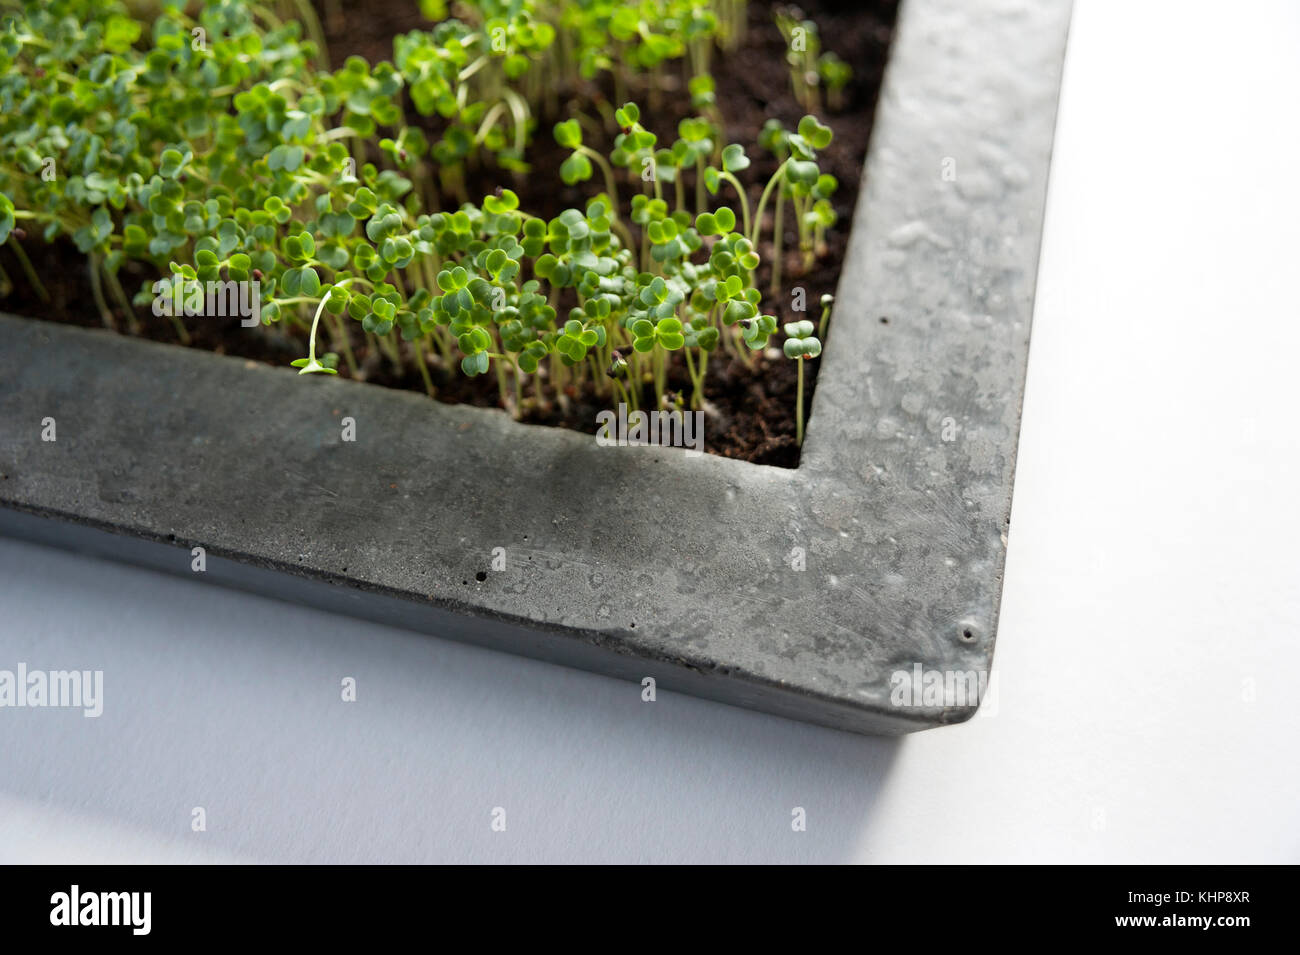 Cress Plants in Concrete Bowl - Stock Image